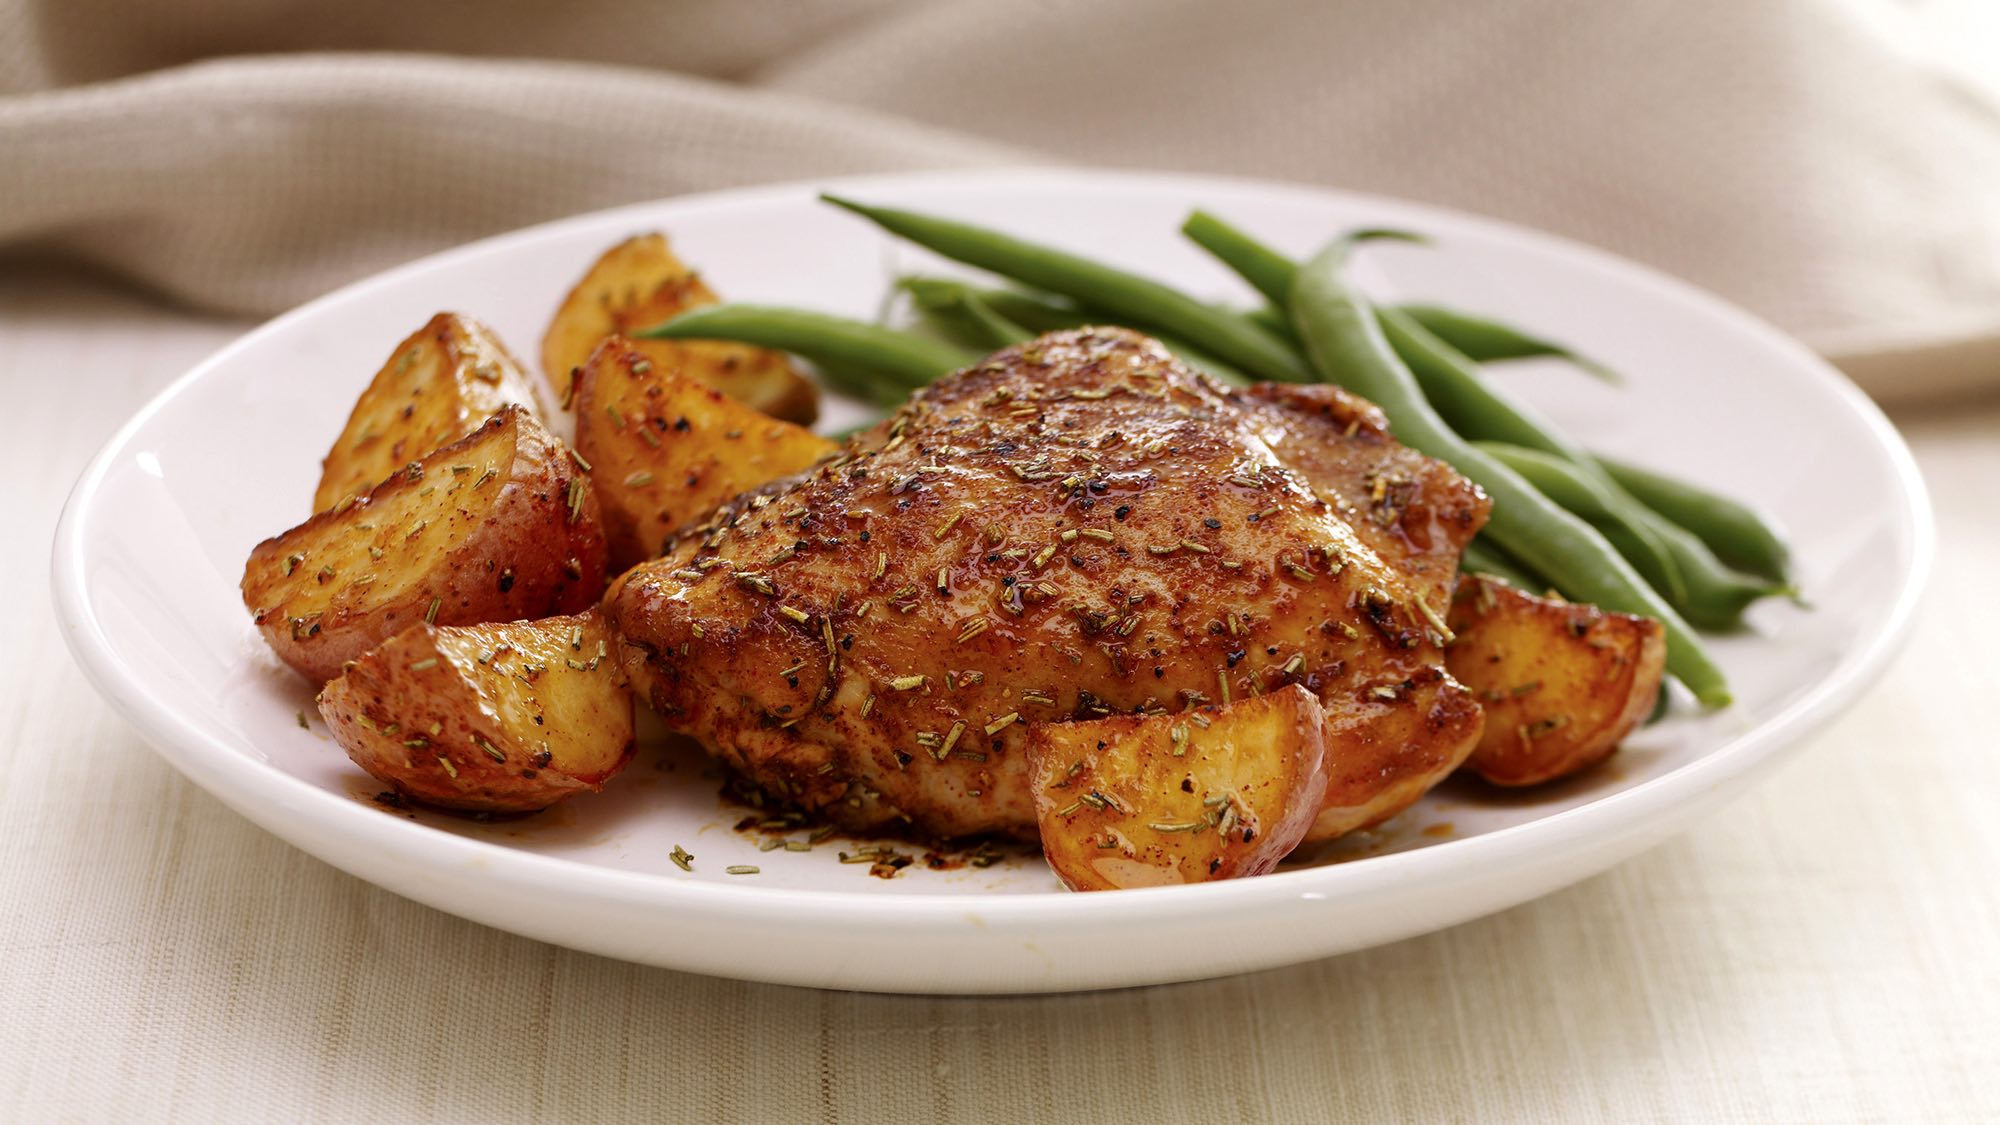 recipe-inspirations-rosemary-roasted-chicken-with-potatoes.jpg